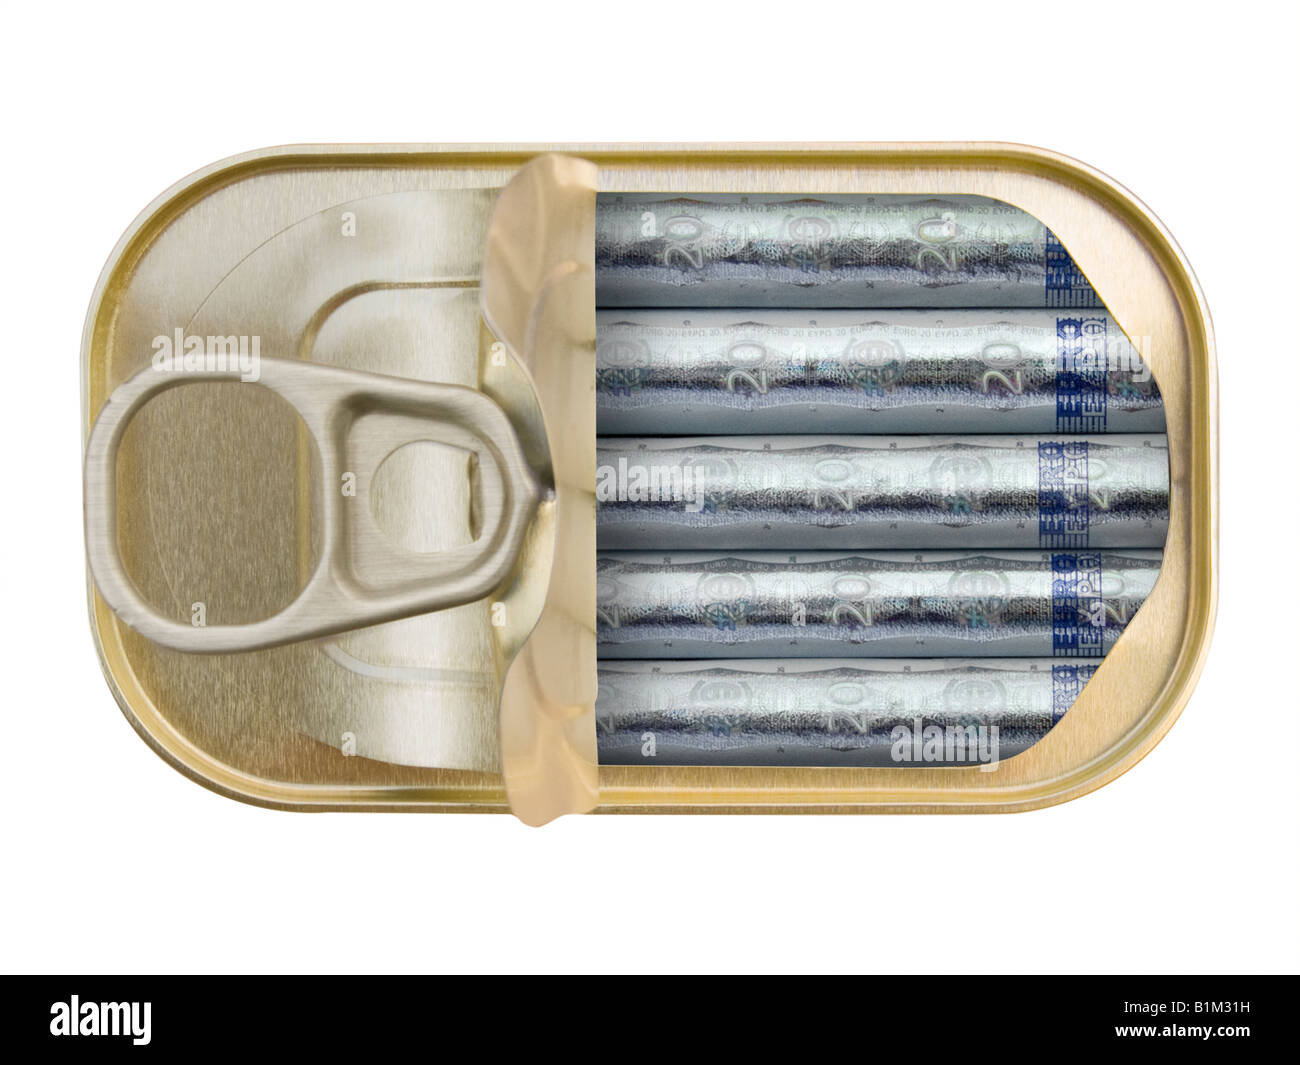 Plan view of a Ring Pull Tin containing rolled 20 Euro notes on white background - Concept - Stock Image